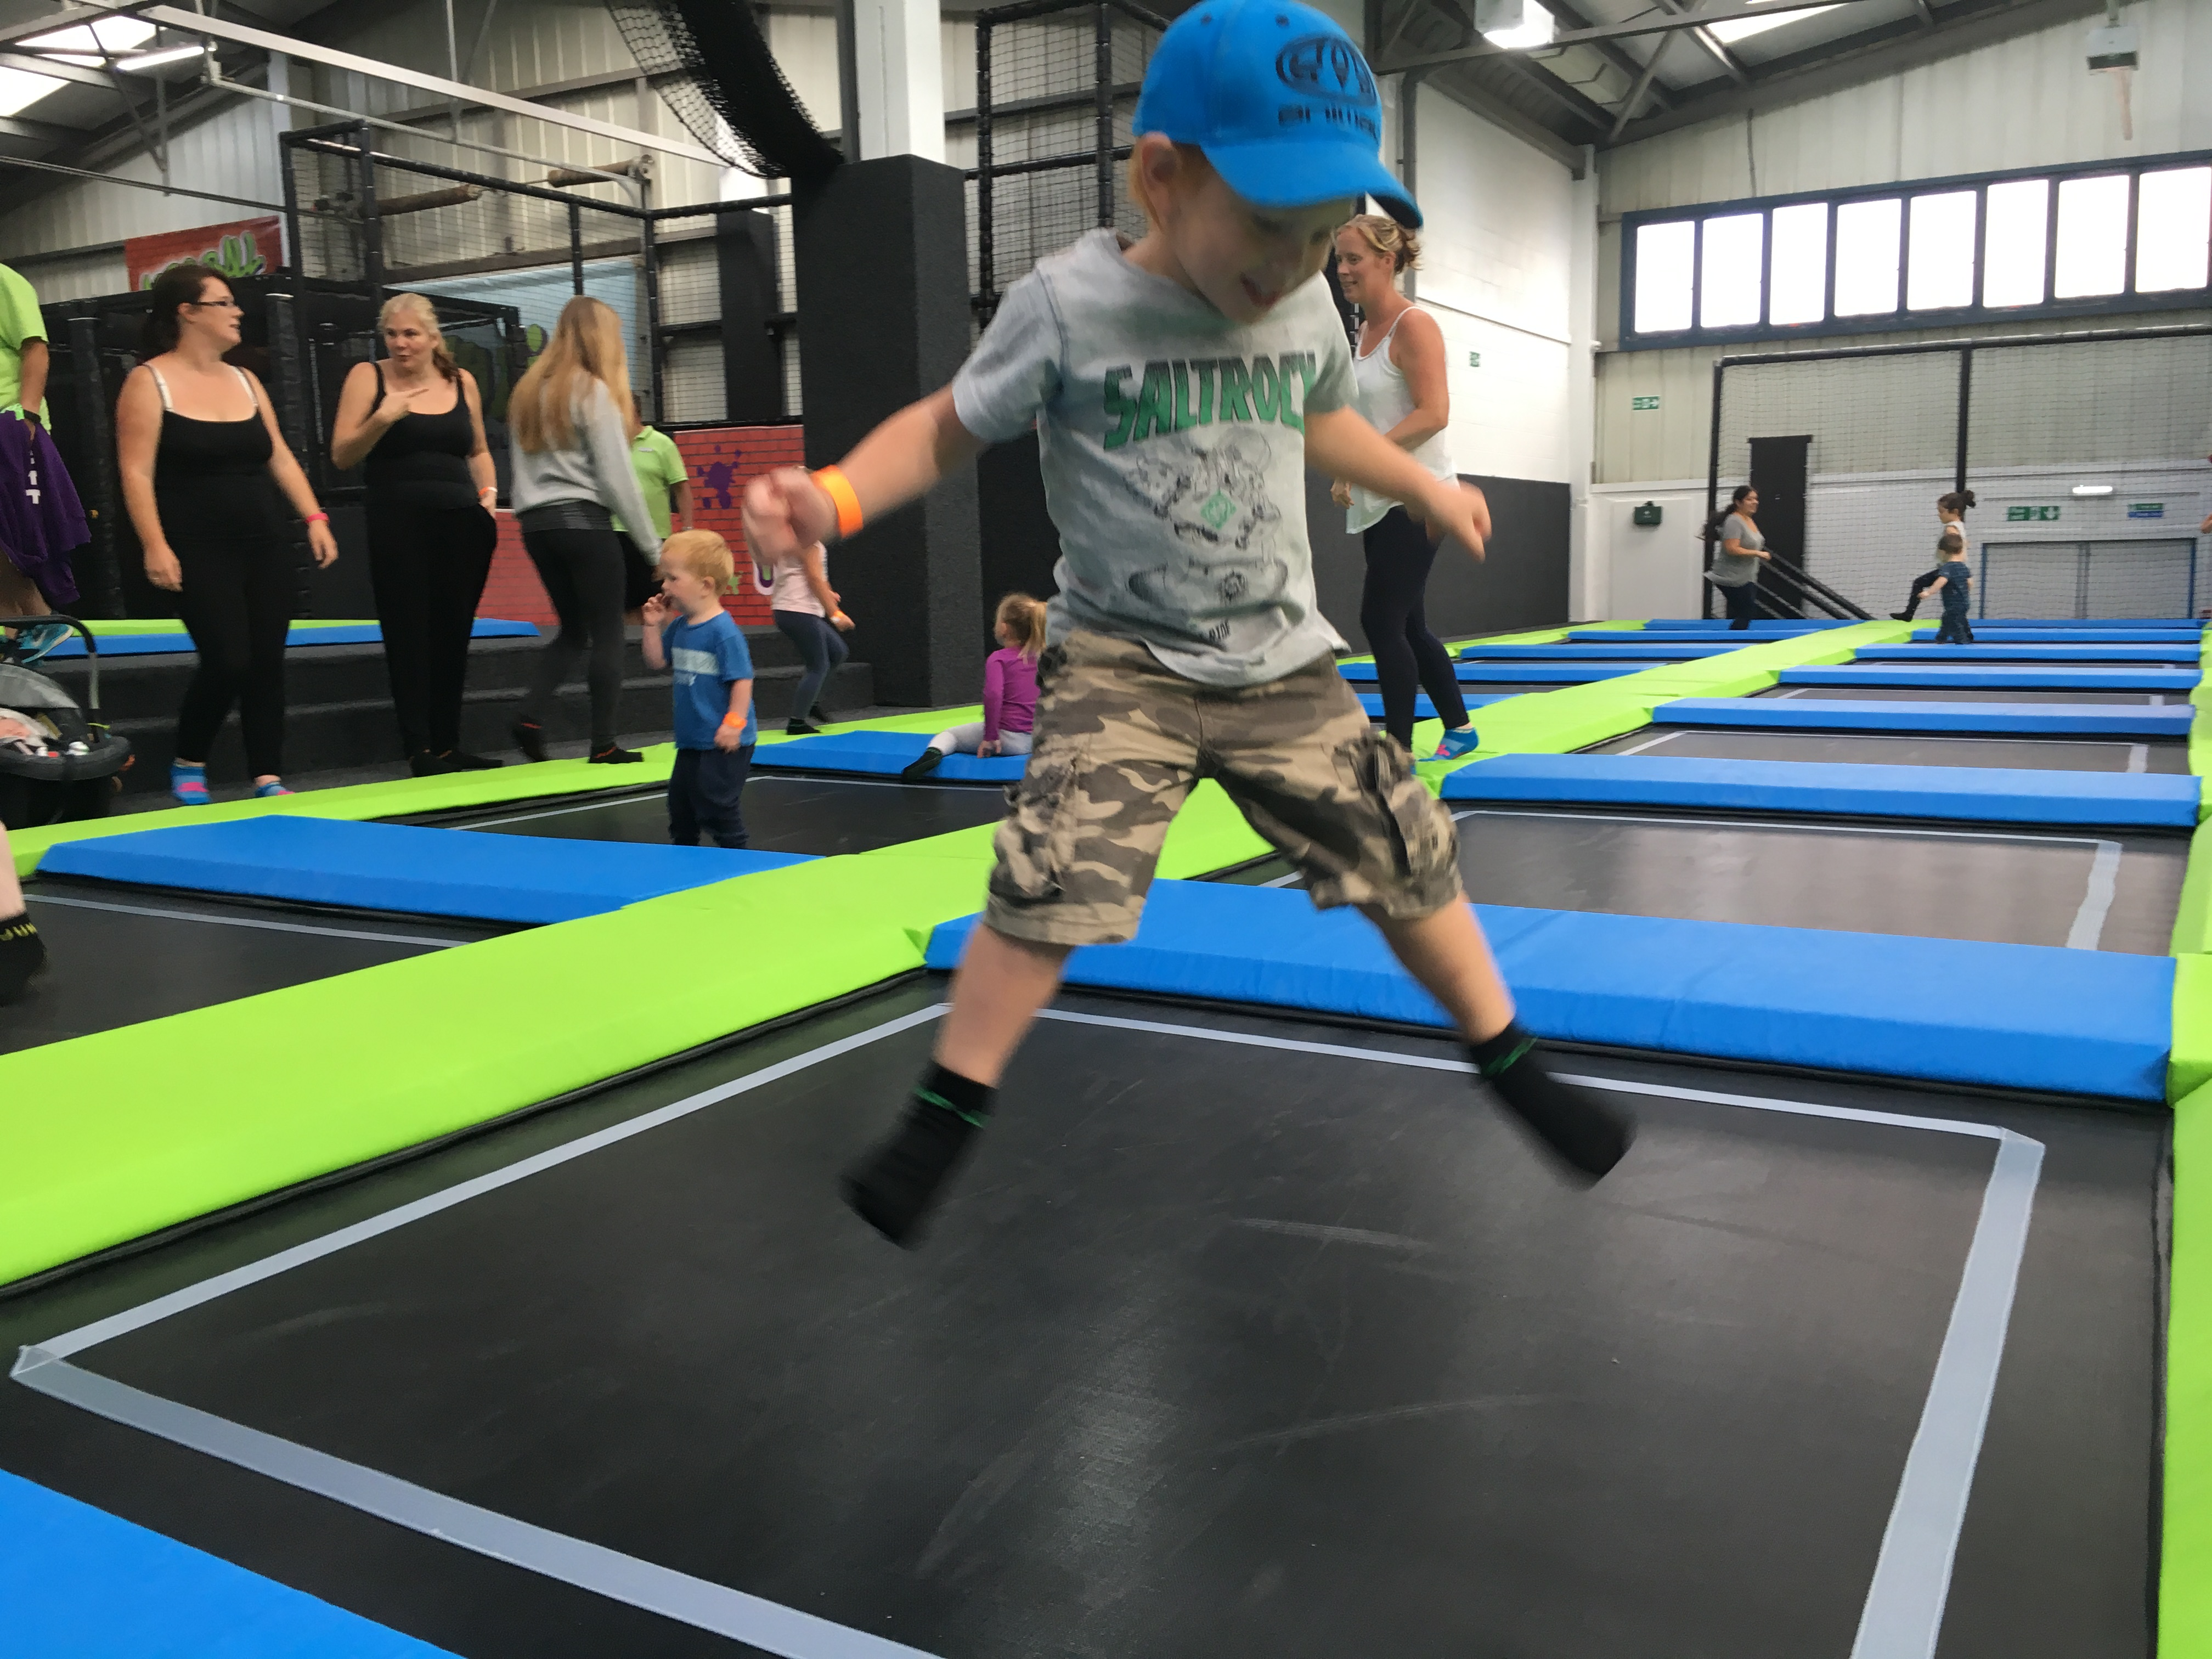 Toddler bouncing at Sky High Trampoline Park in Sussex